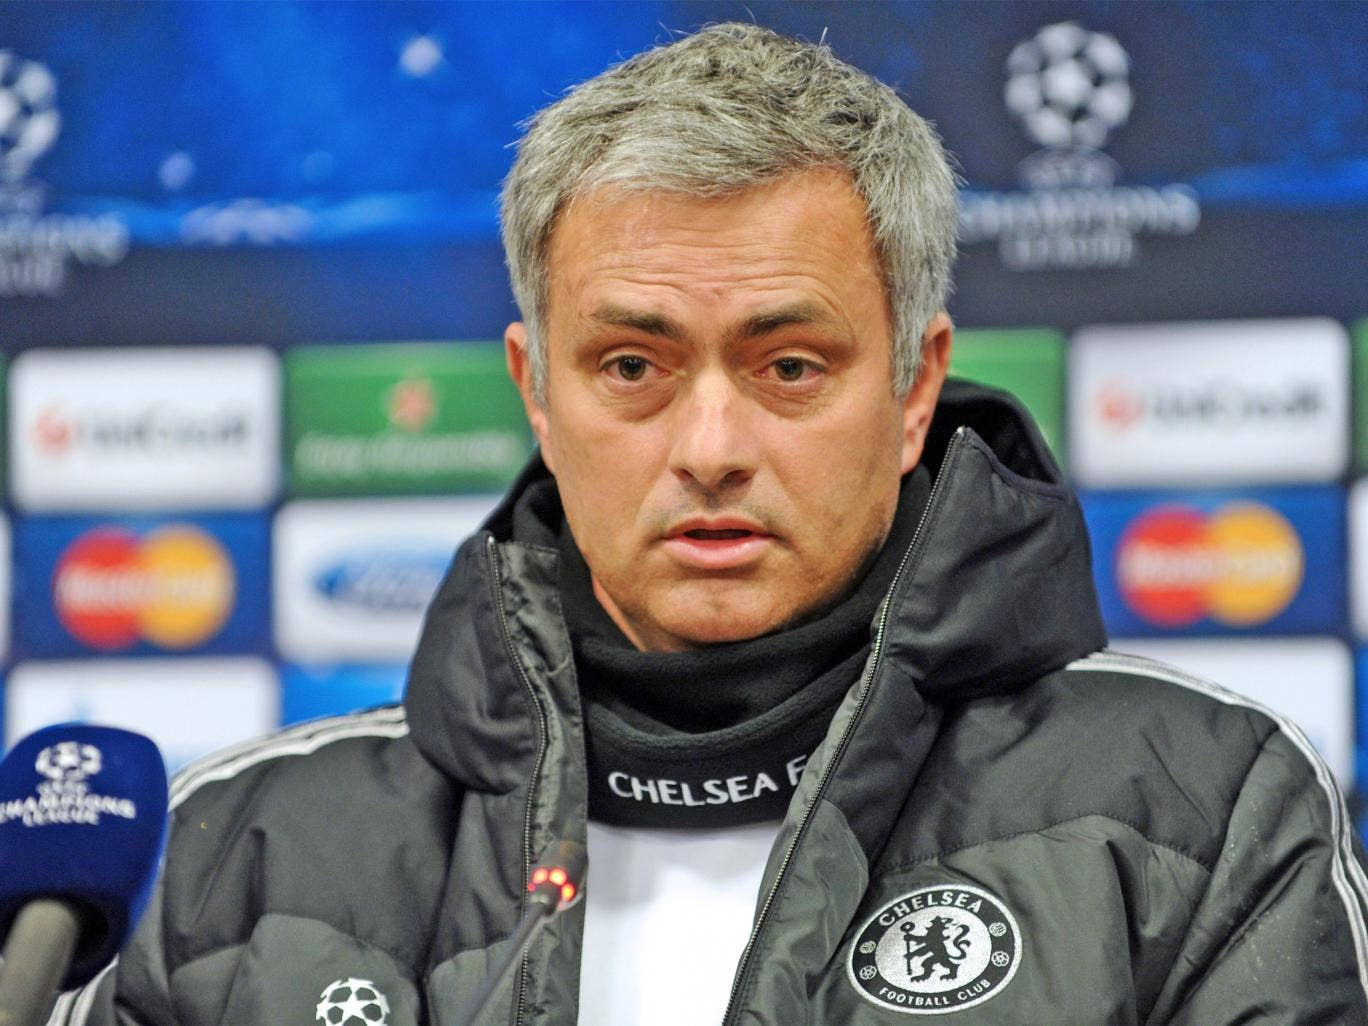 Jose Mourinho laughed off claims Roberto Mancini built his 2010 European Cup winning side